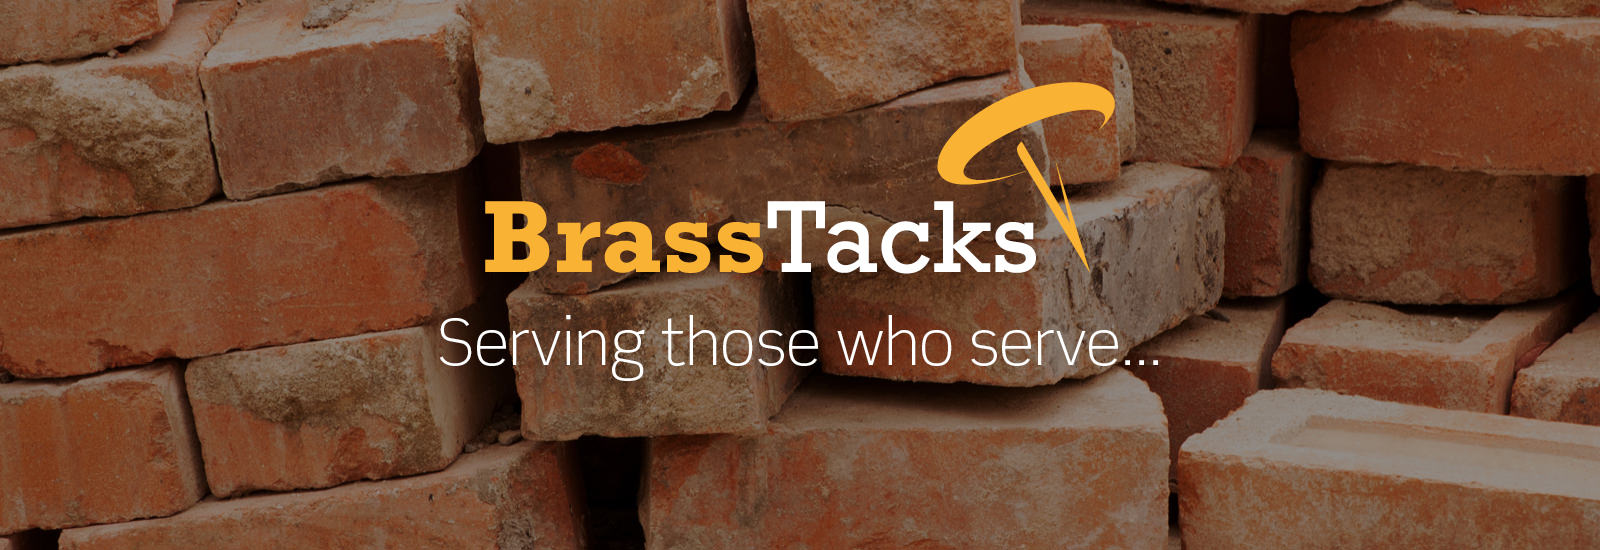 BrassTacks - Serving those who serve...